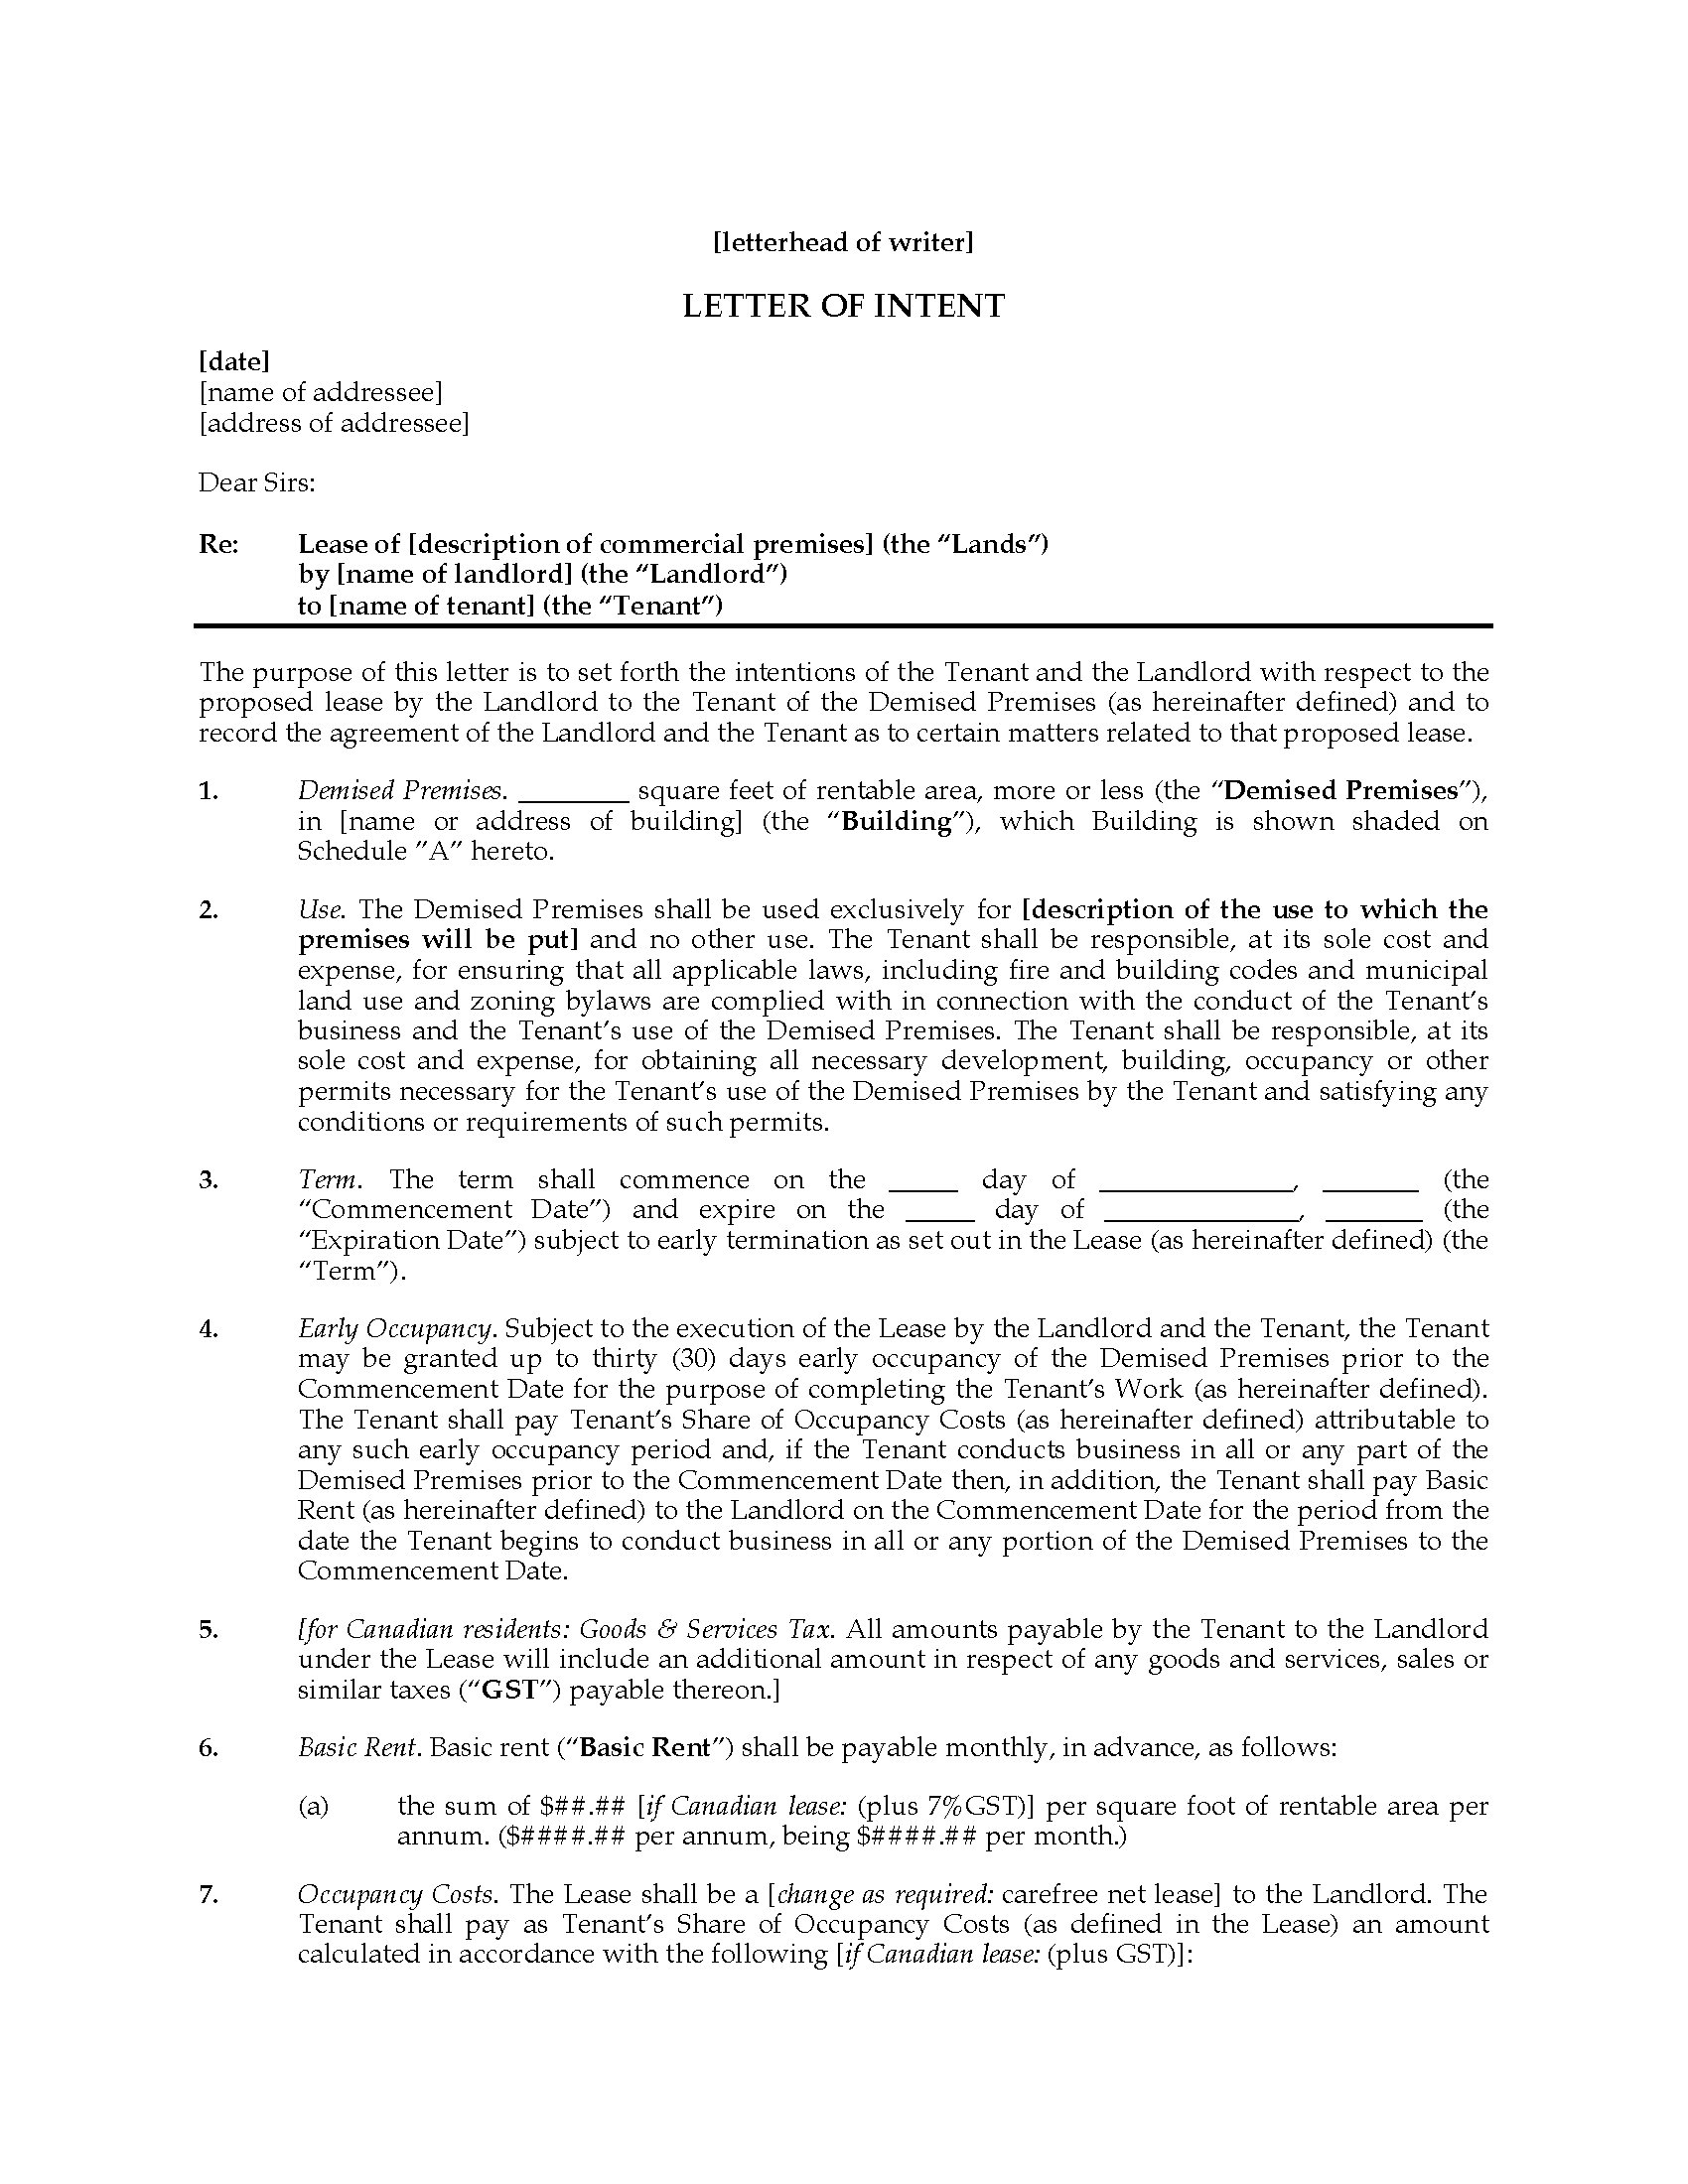 Letter Of Intent to Rent Template - Letter Intent Texasial Lease Sample Direct to Download for